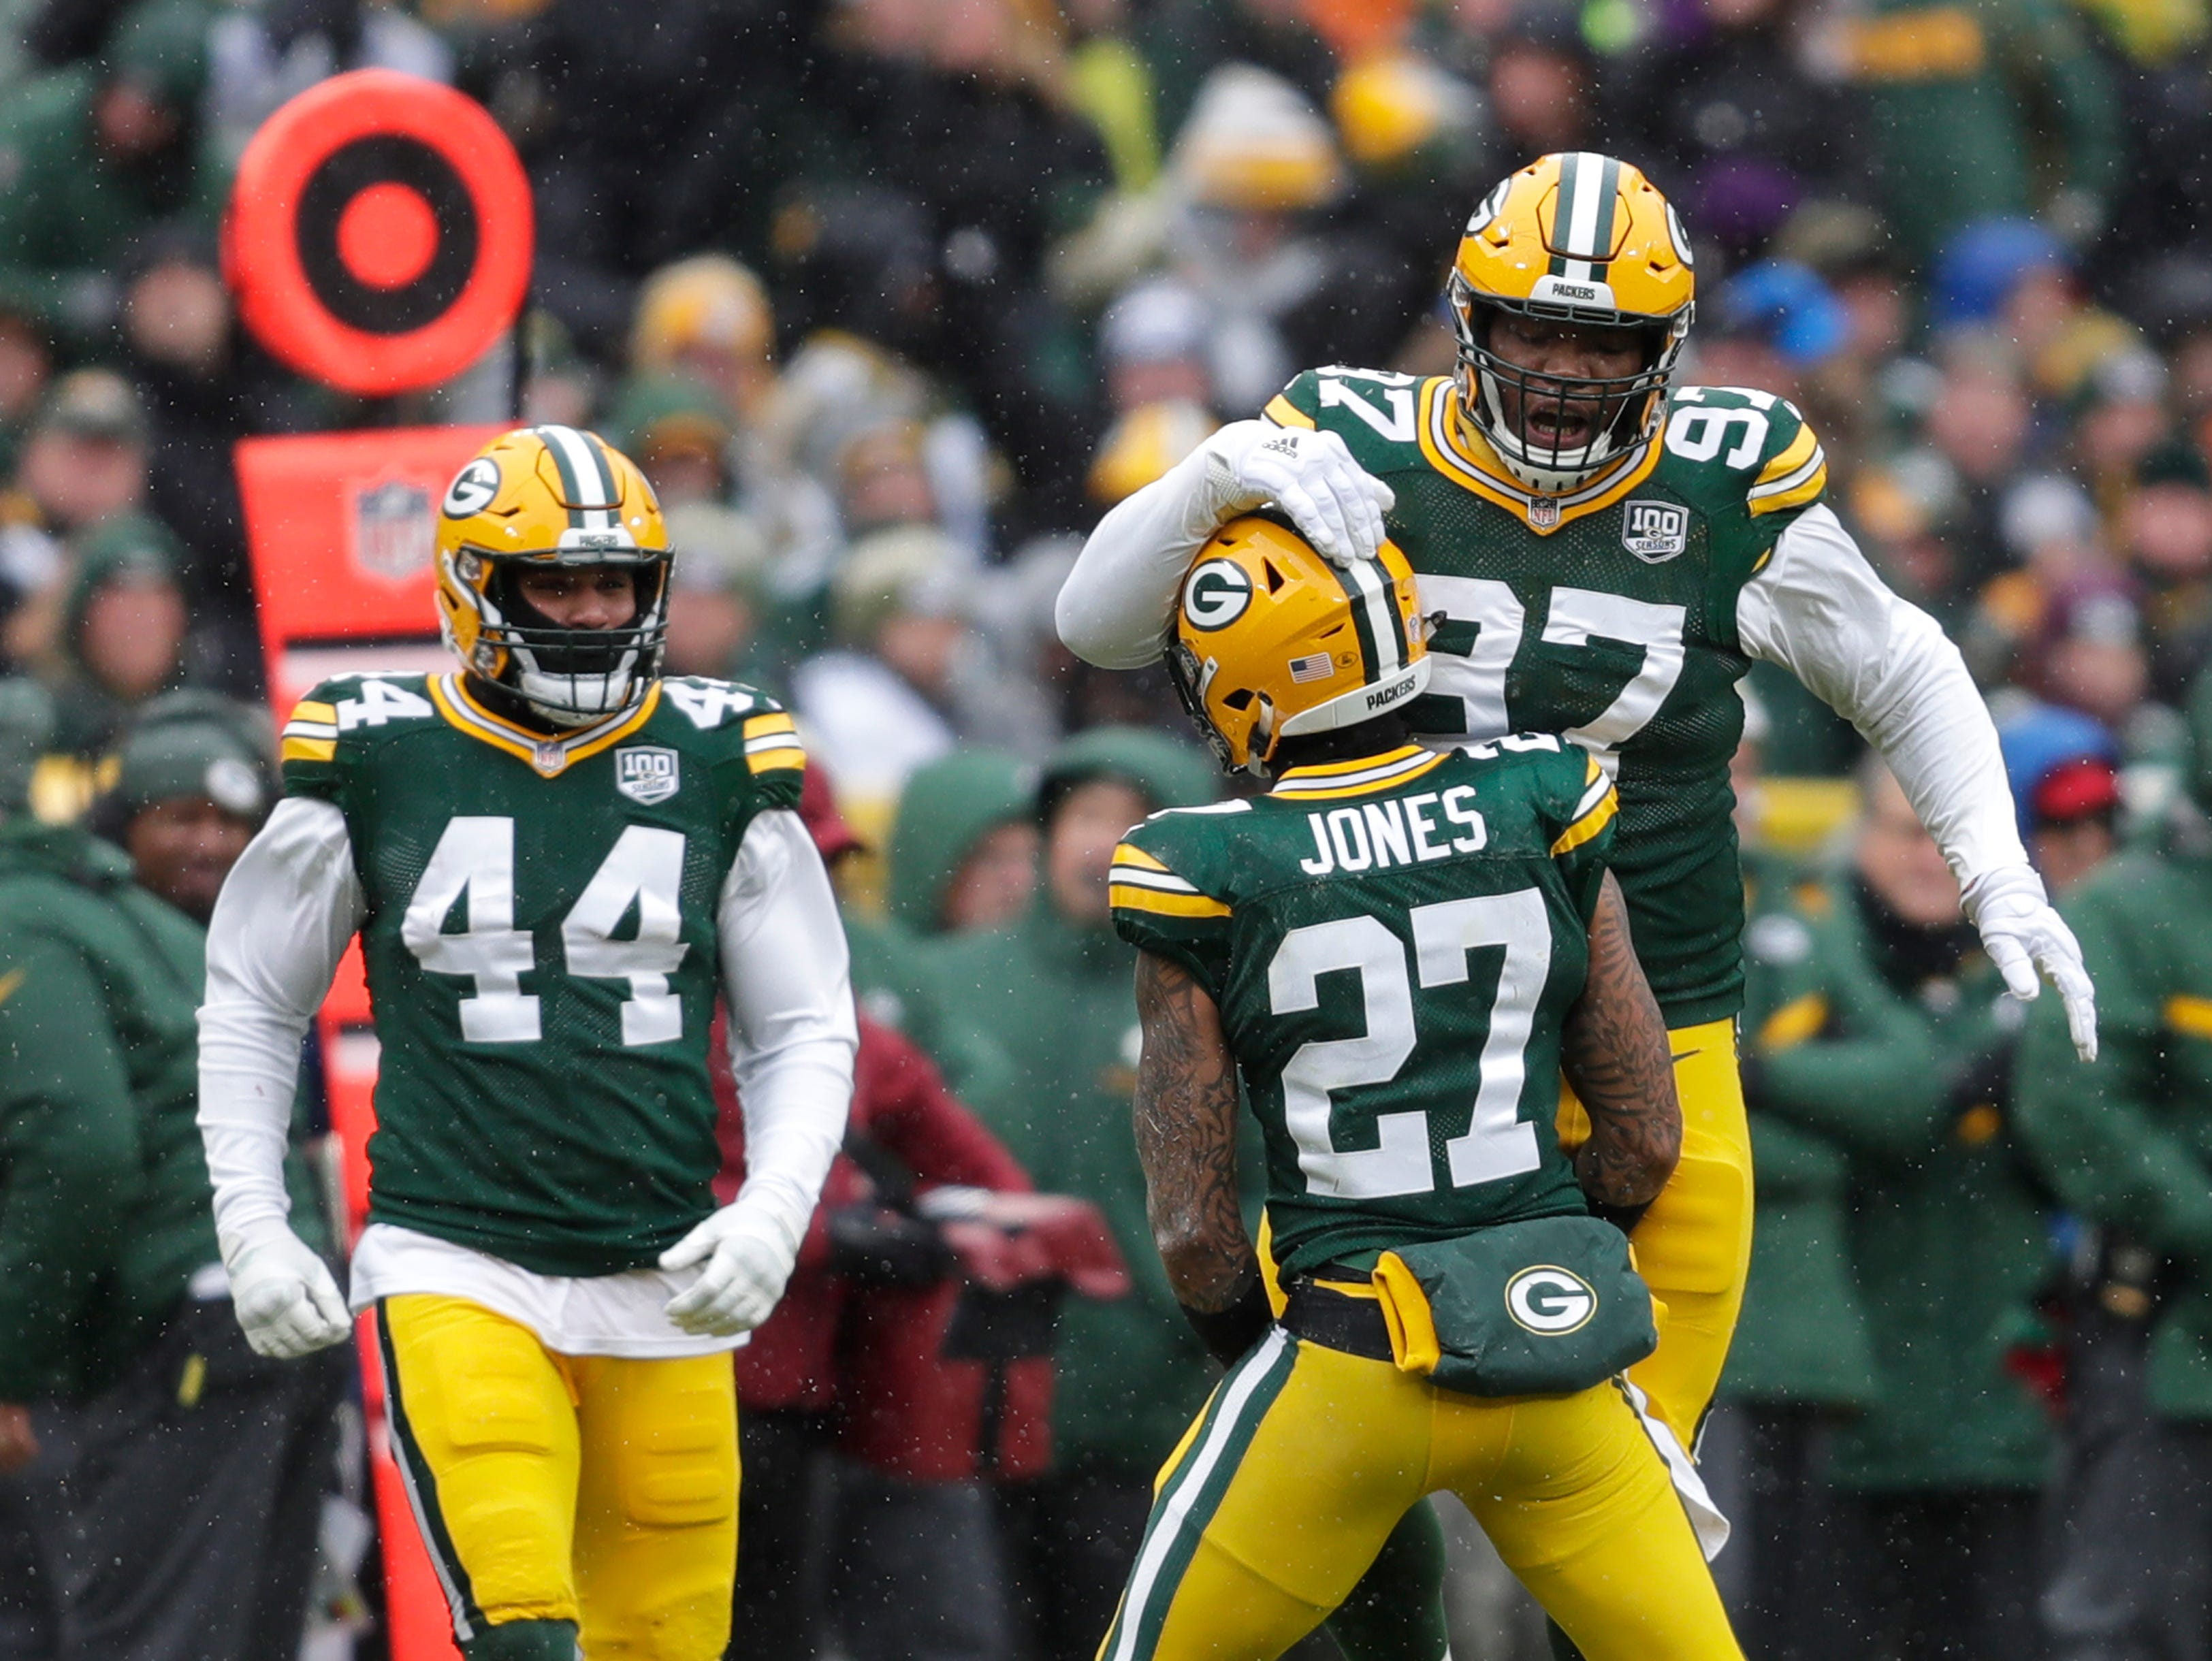 Green Bay Packers defensive back Josh Jones (27) celebrates getting a sack against the Arizona Cardinals with inside linebacker Antonio Morrison (44) and nose tackle Kenny Clark (97) Sunday, December 2, 2018, at Lambeau Field in Green Bay, Wis. 